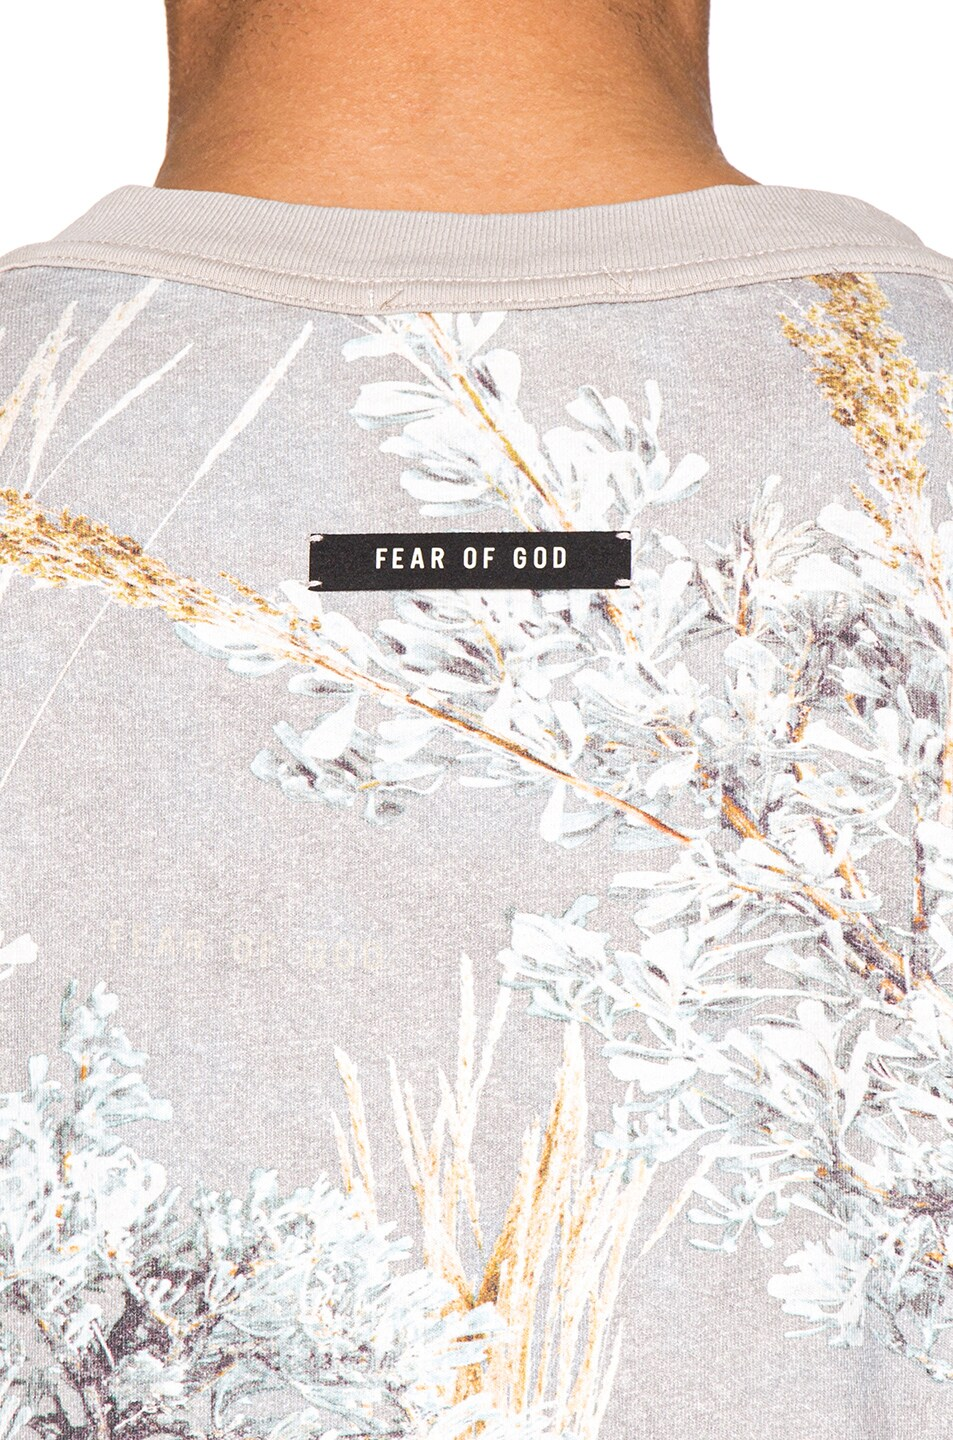 Image 5 of Fear of God Printed Long Sleeve Tee in Prarie Ghost Camo